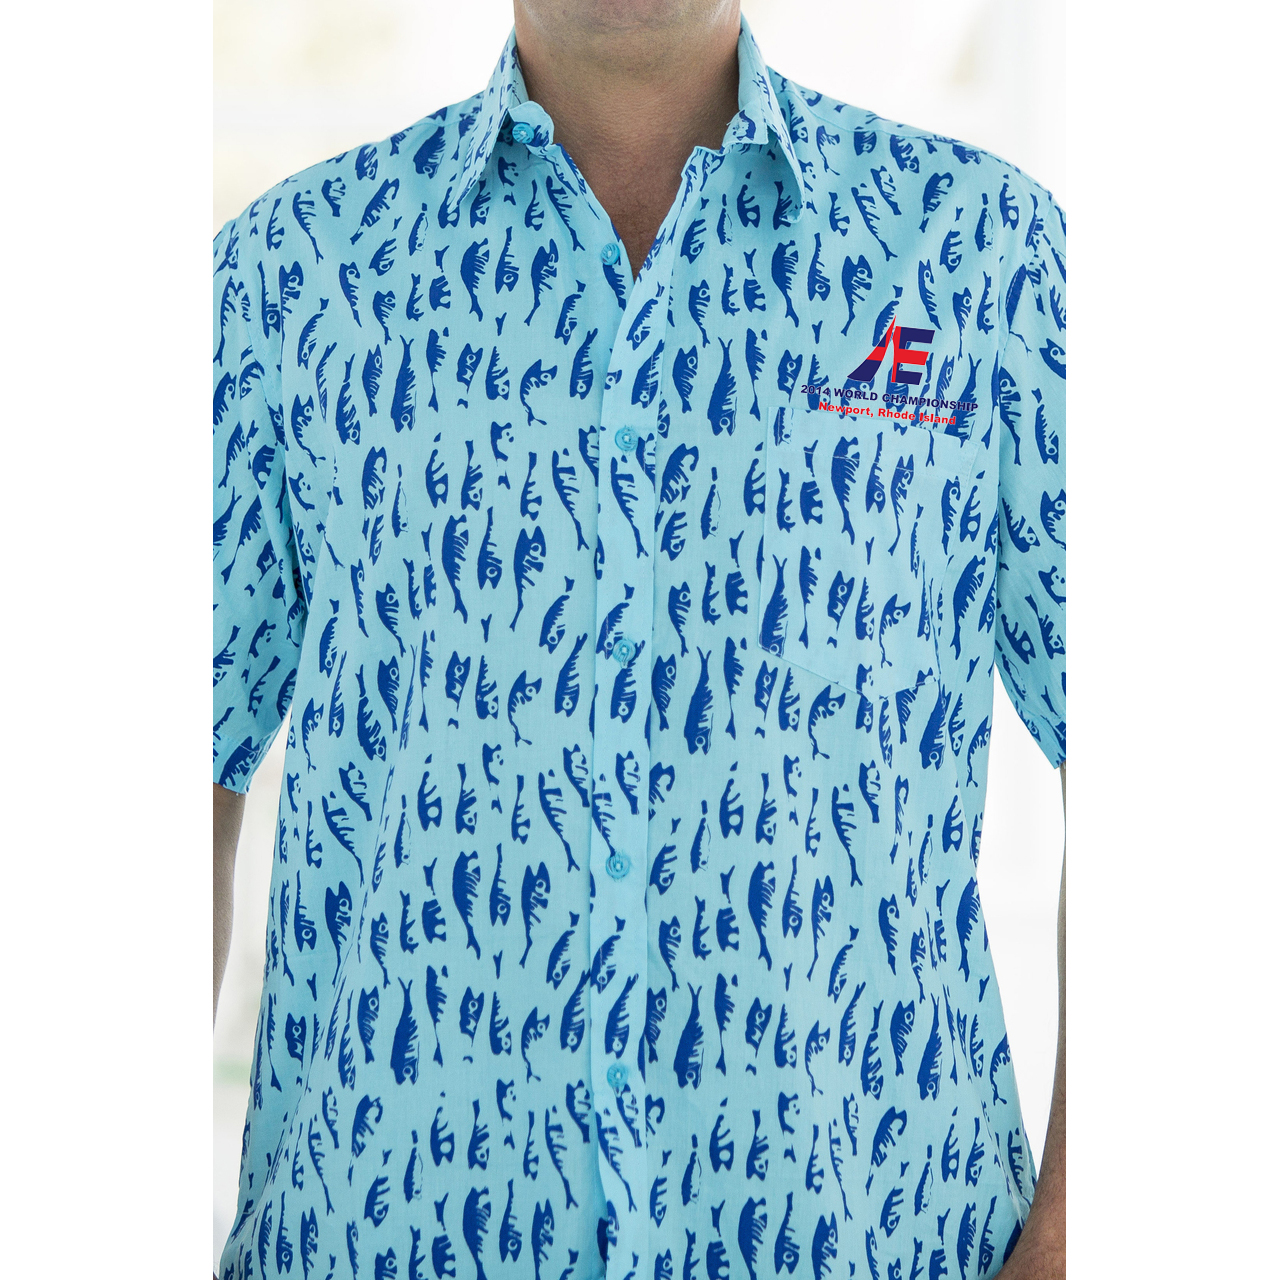 ETCHELL WORLDS M's SHELTER ISLAND S/S BUTTON DOWN SHIRT